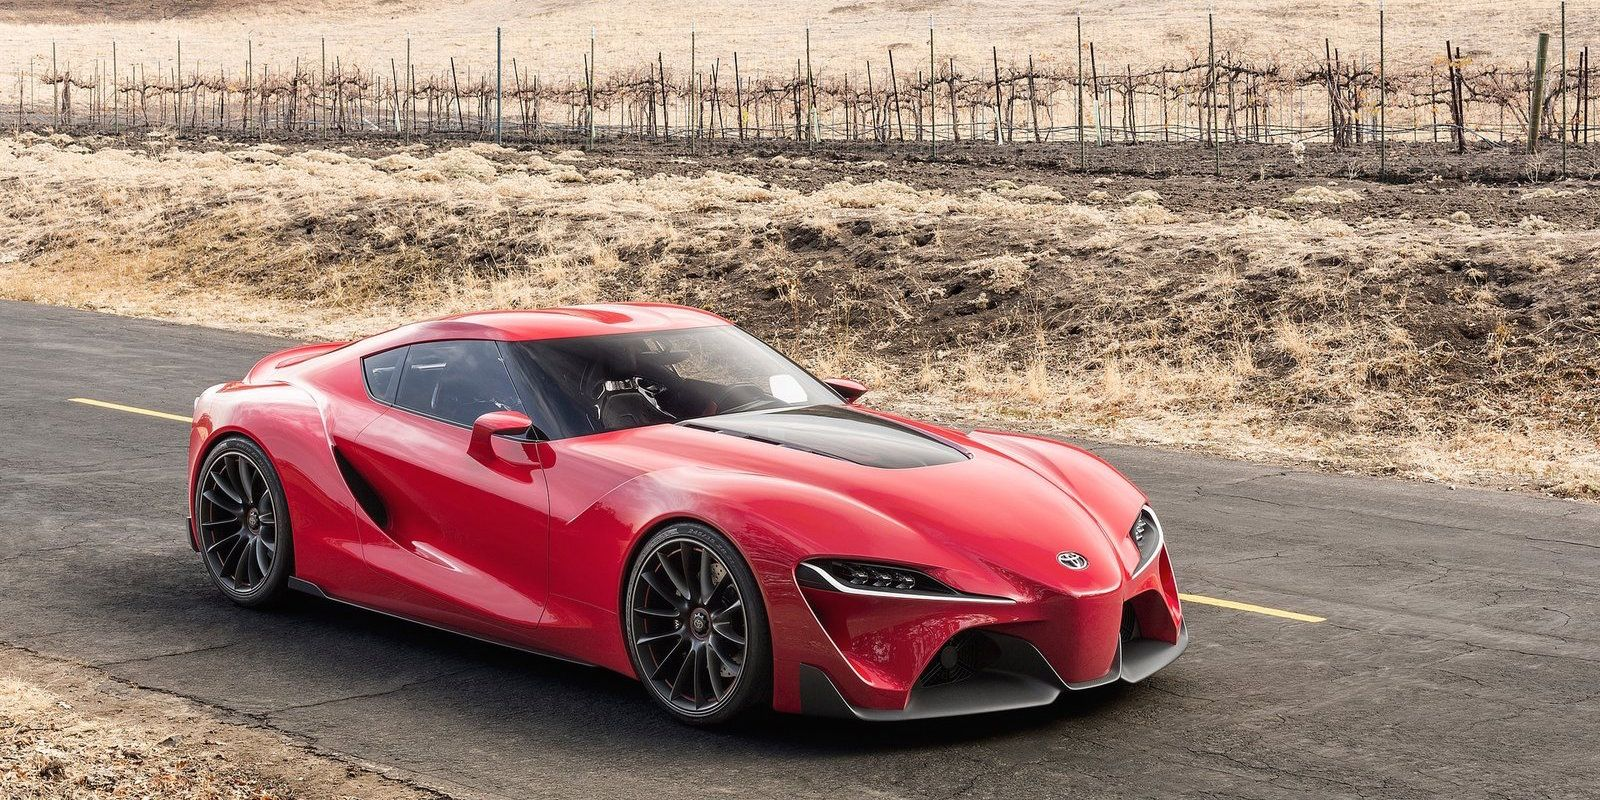 BMWToyota Sports Car Collaboration Starts Production in 2018